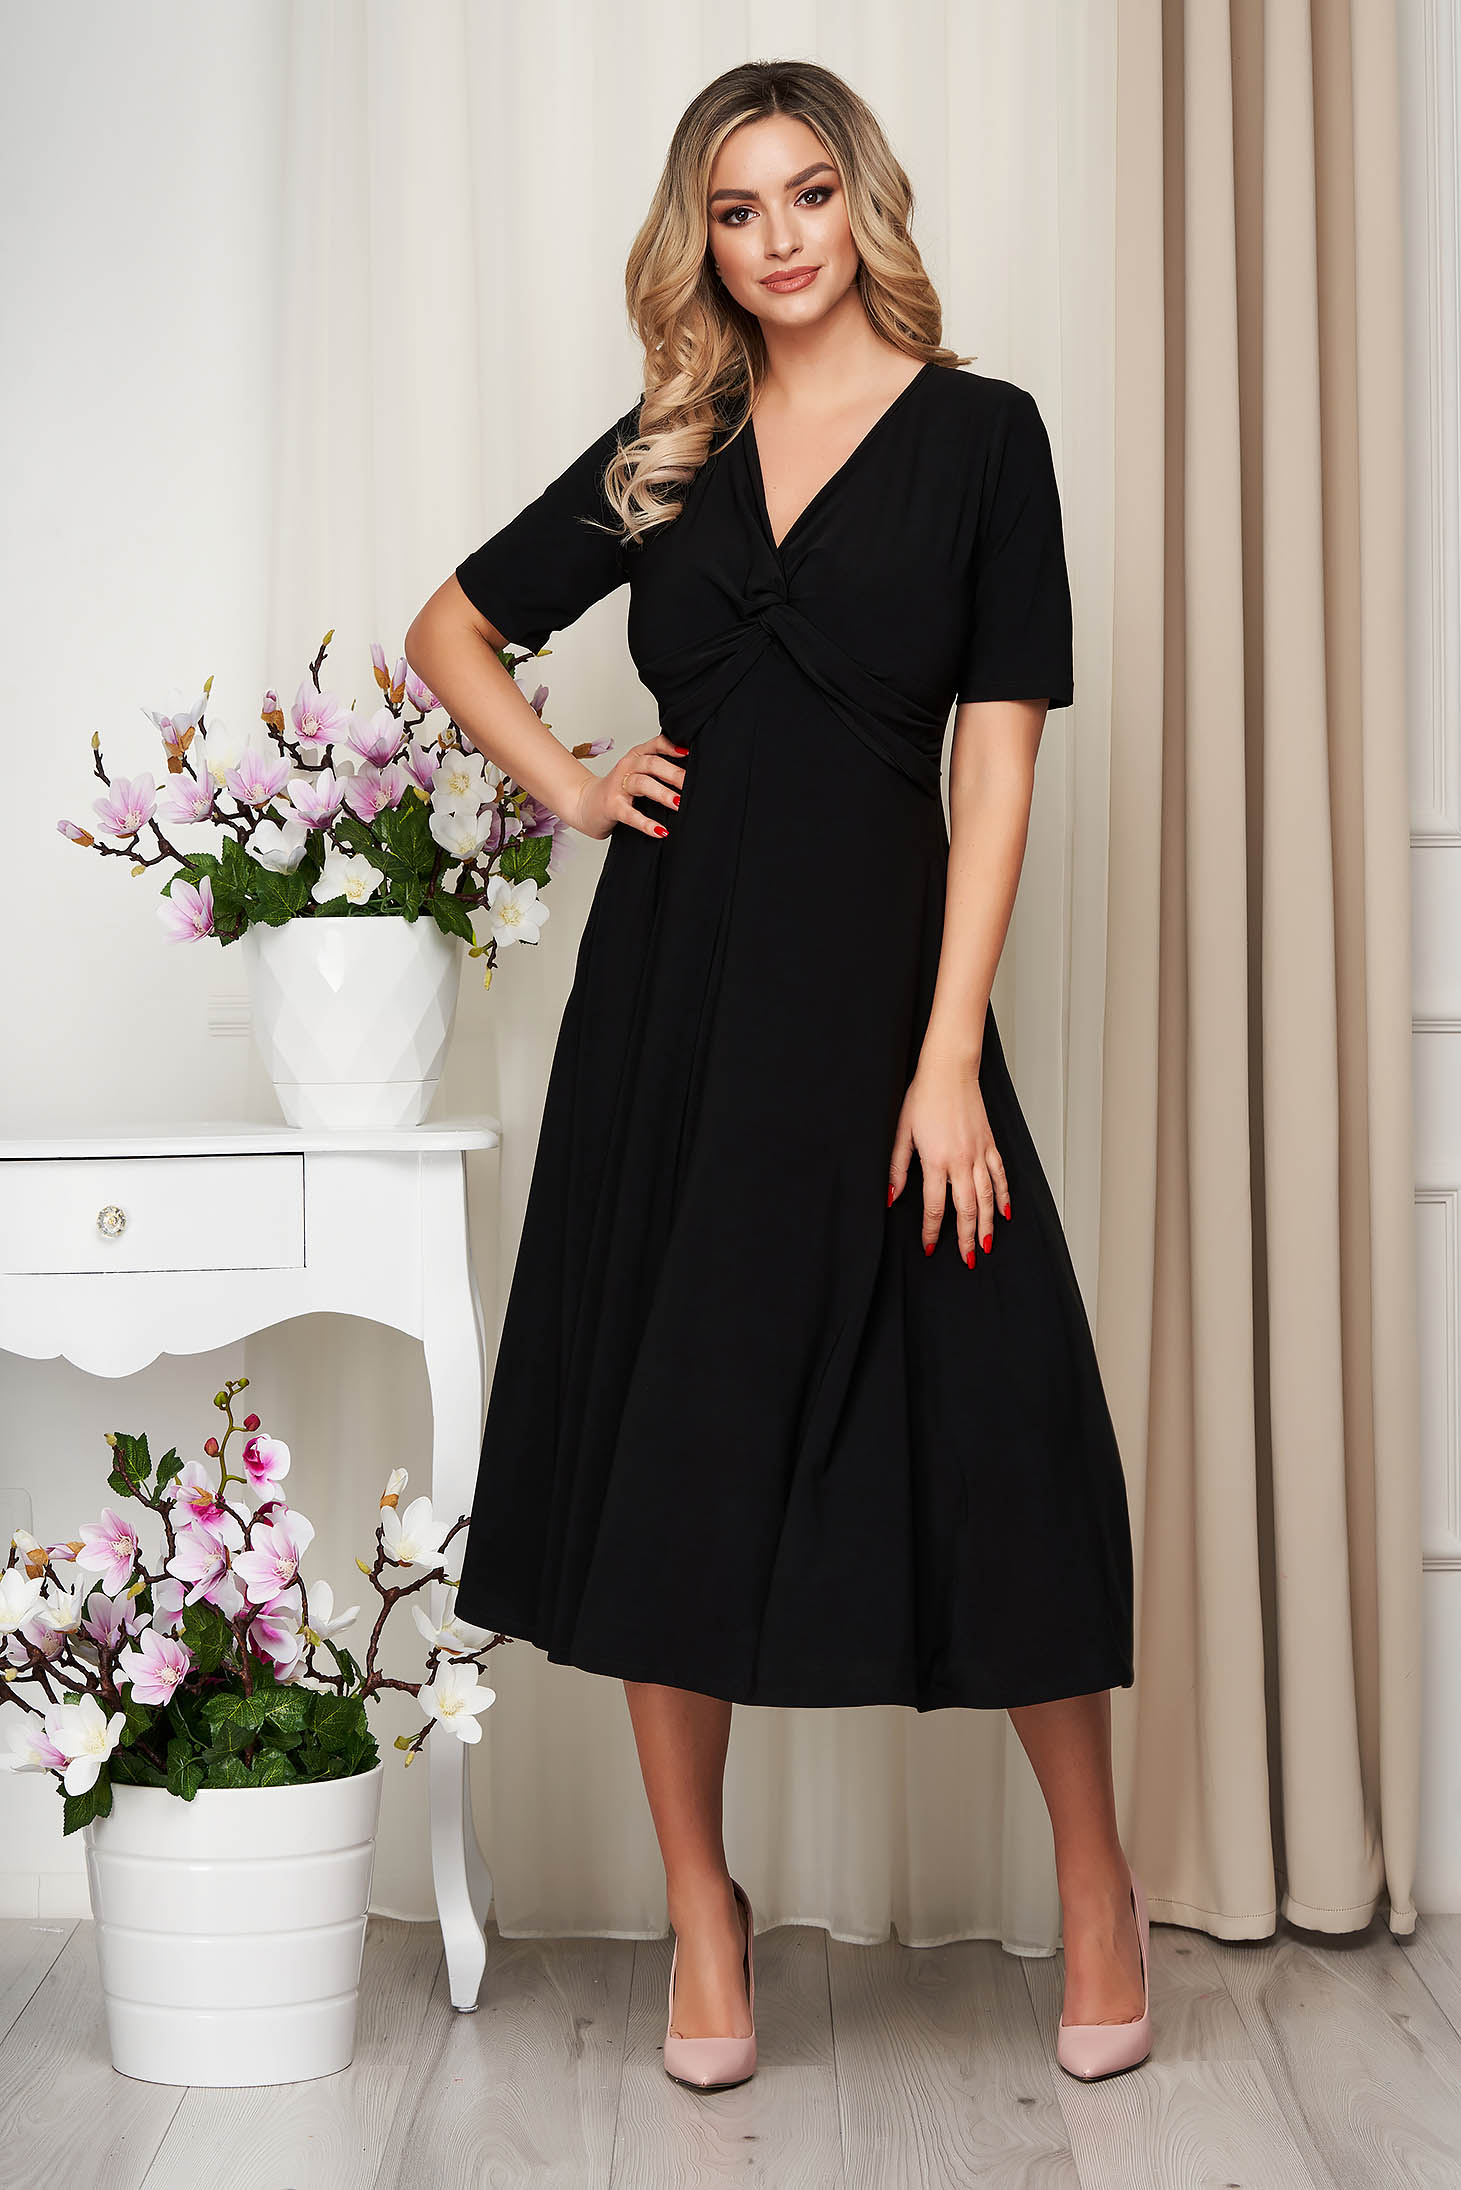 Black dress a-line from elastic fabric with deep cleavage